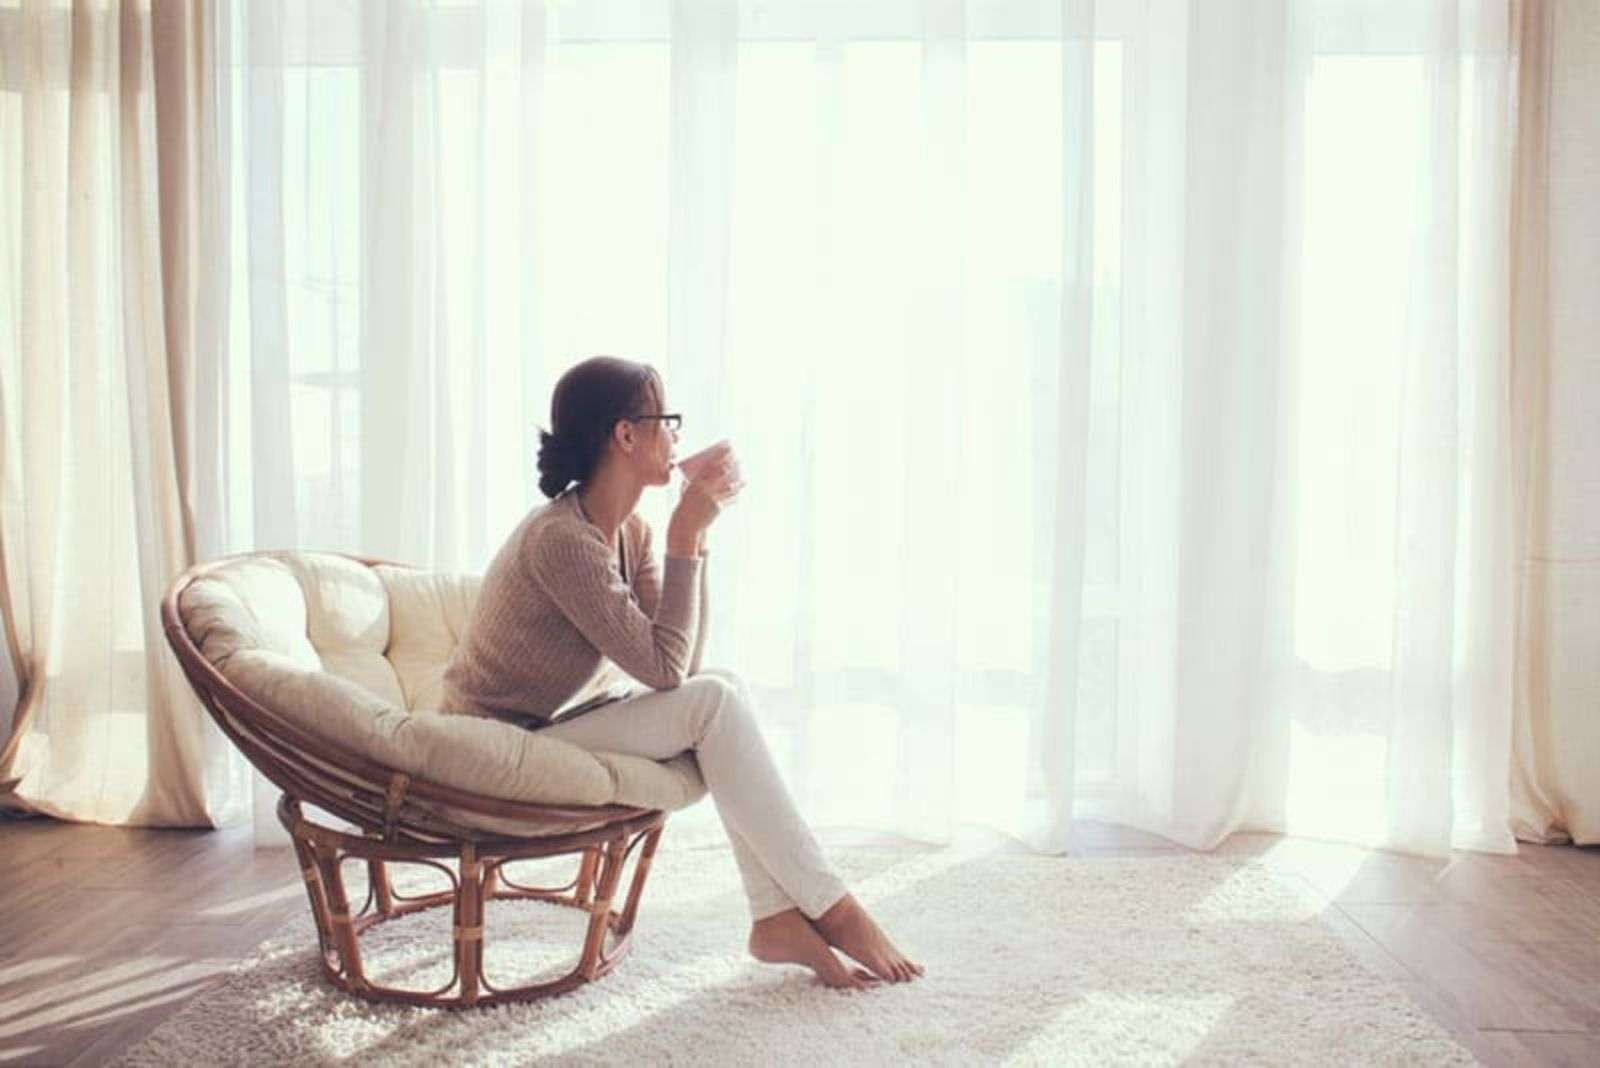 a woman sitting on a chair with a cup of coffee